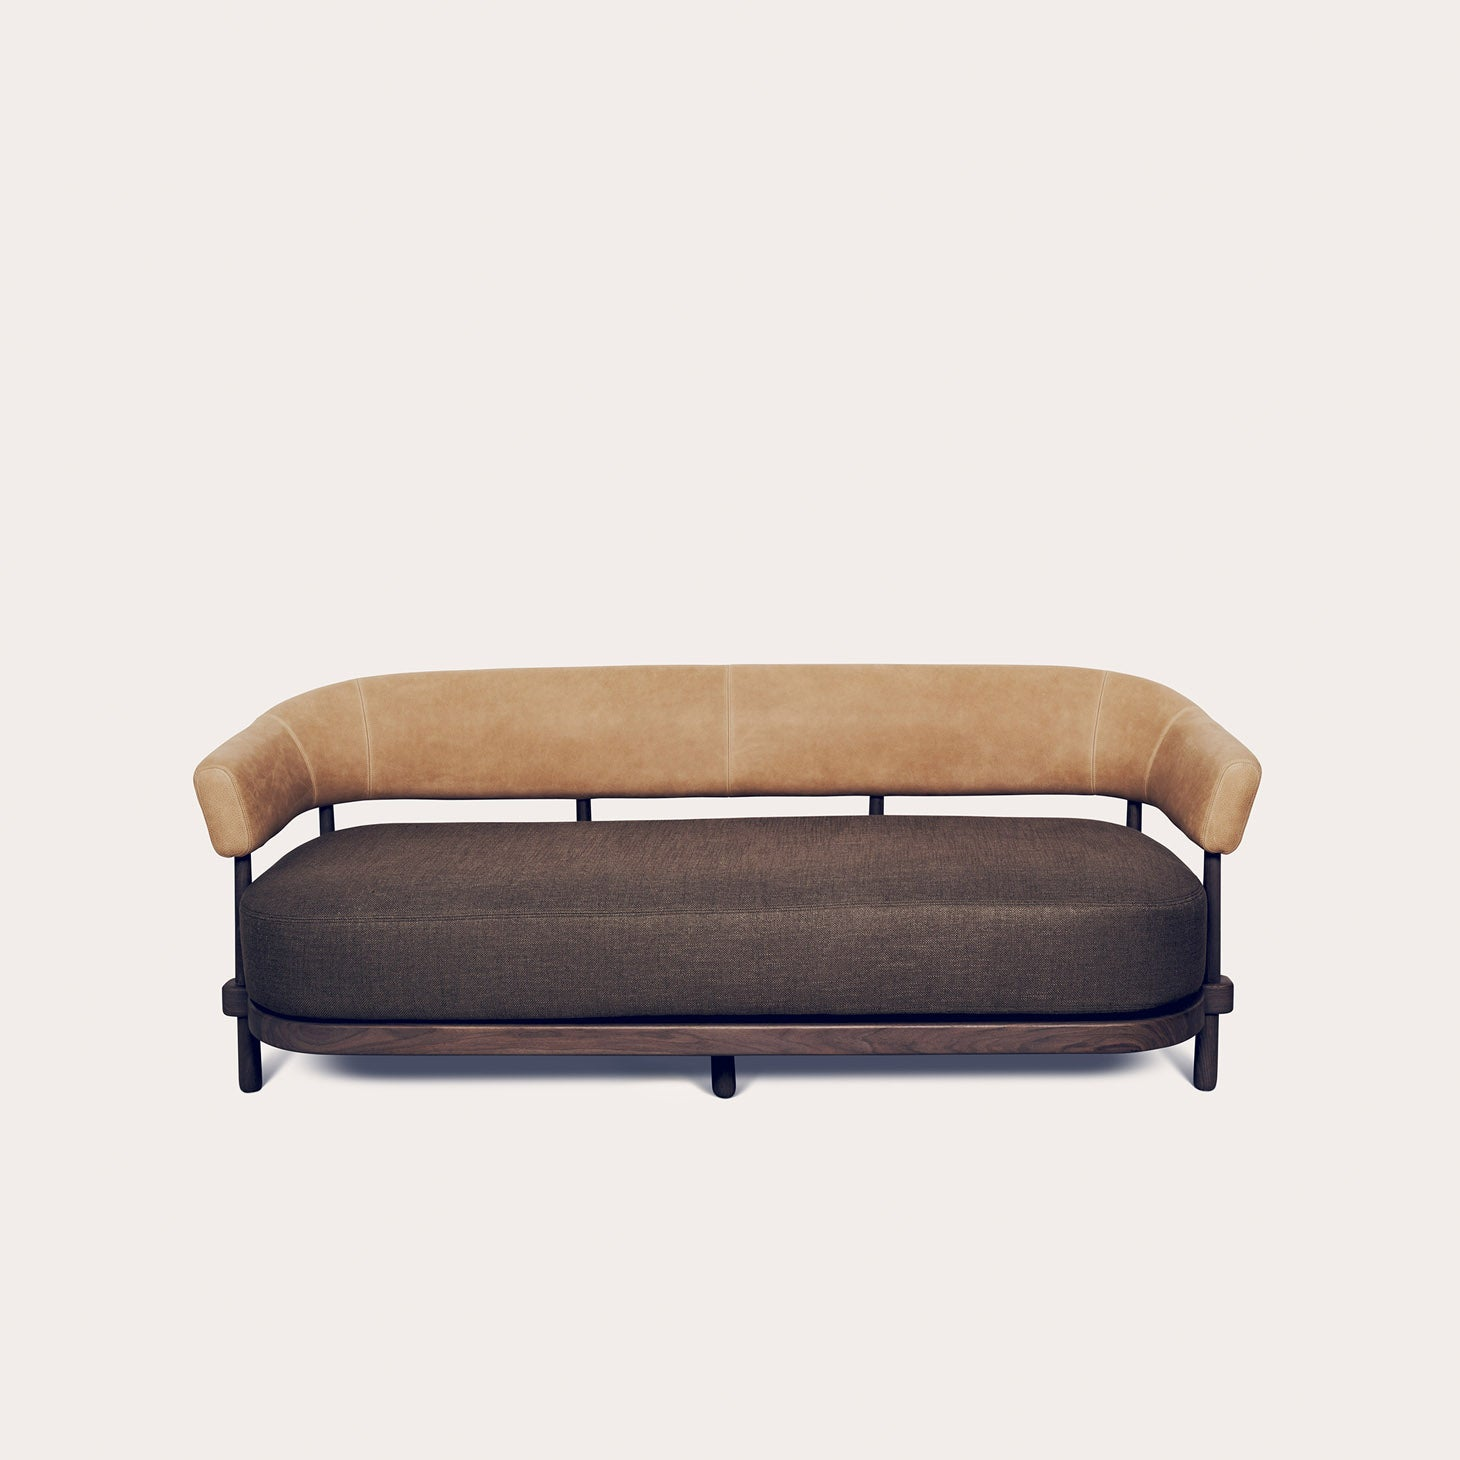 GUM Seating Christophe Delcourt Designer Furniture Sku: 008-240-10119